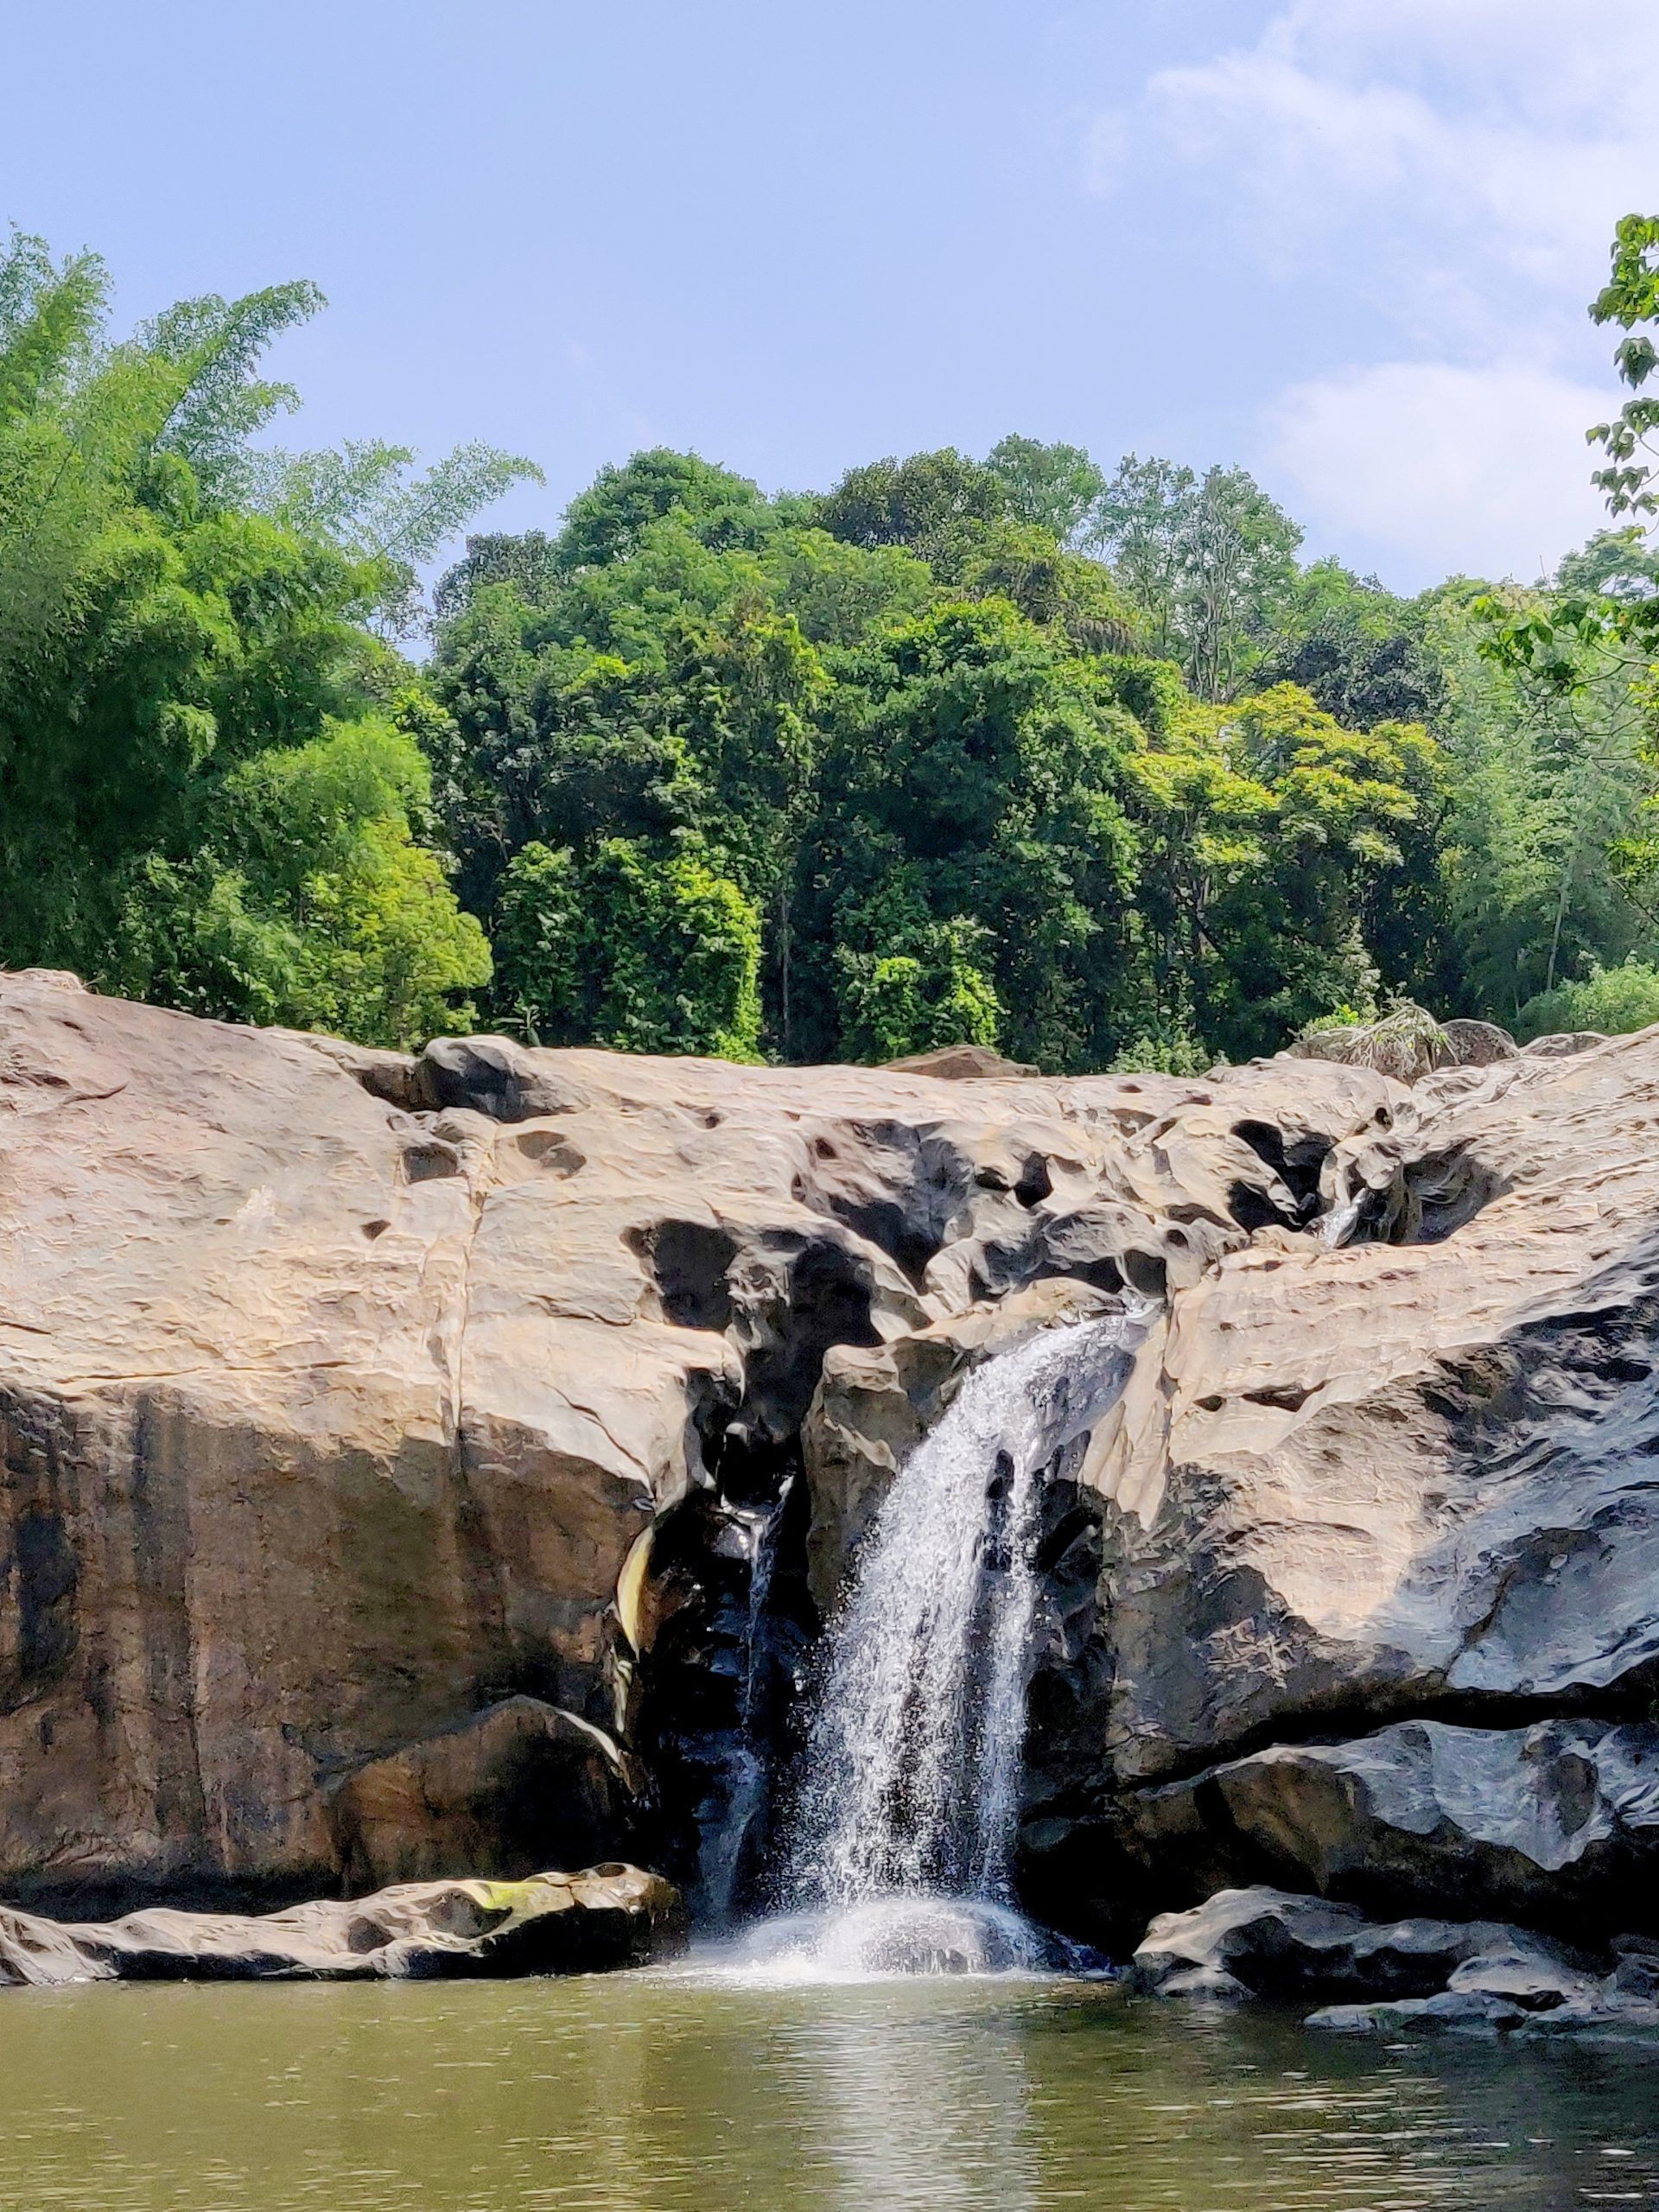 Go for a road trip along the Western Ghats